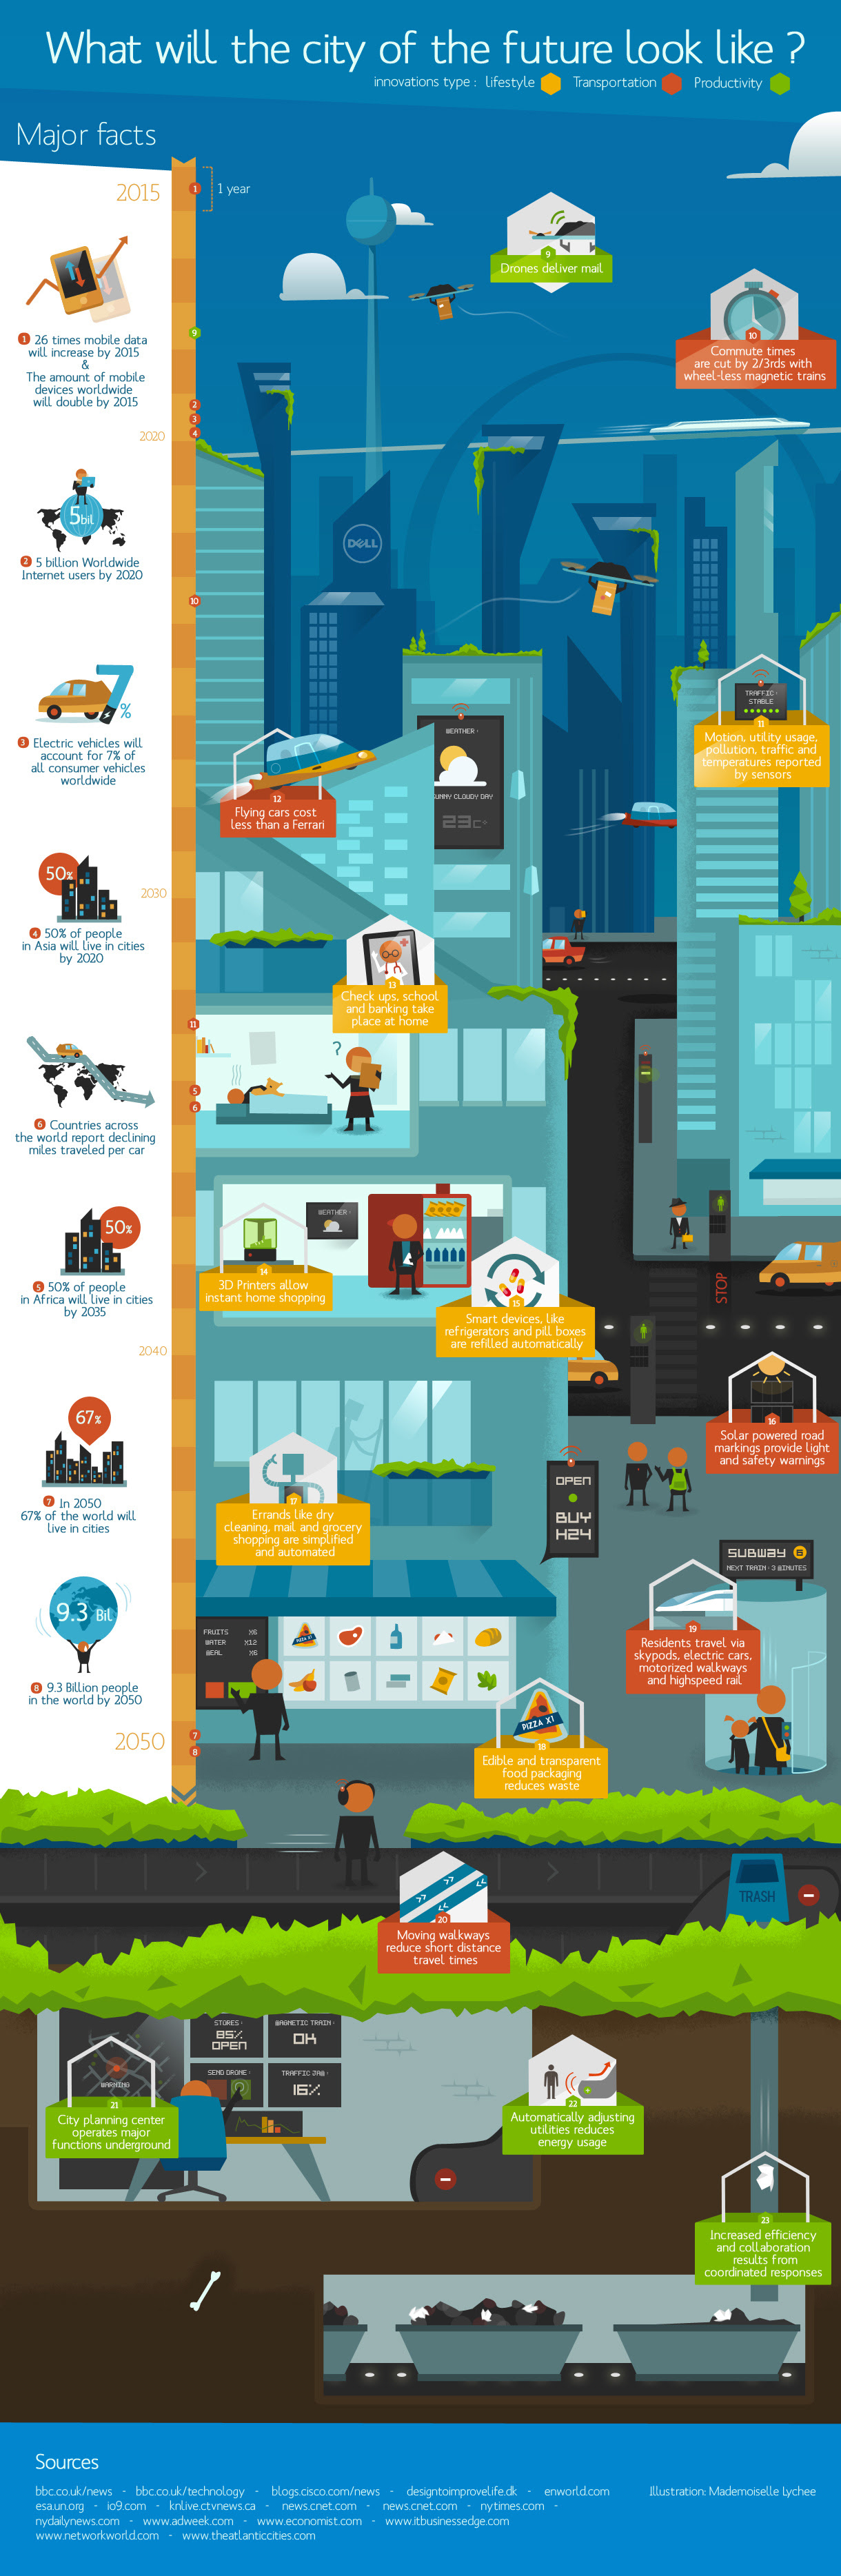 Infographic: What Will The City Of The Future Look Like? [Infographic]